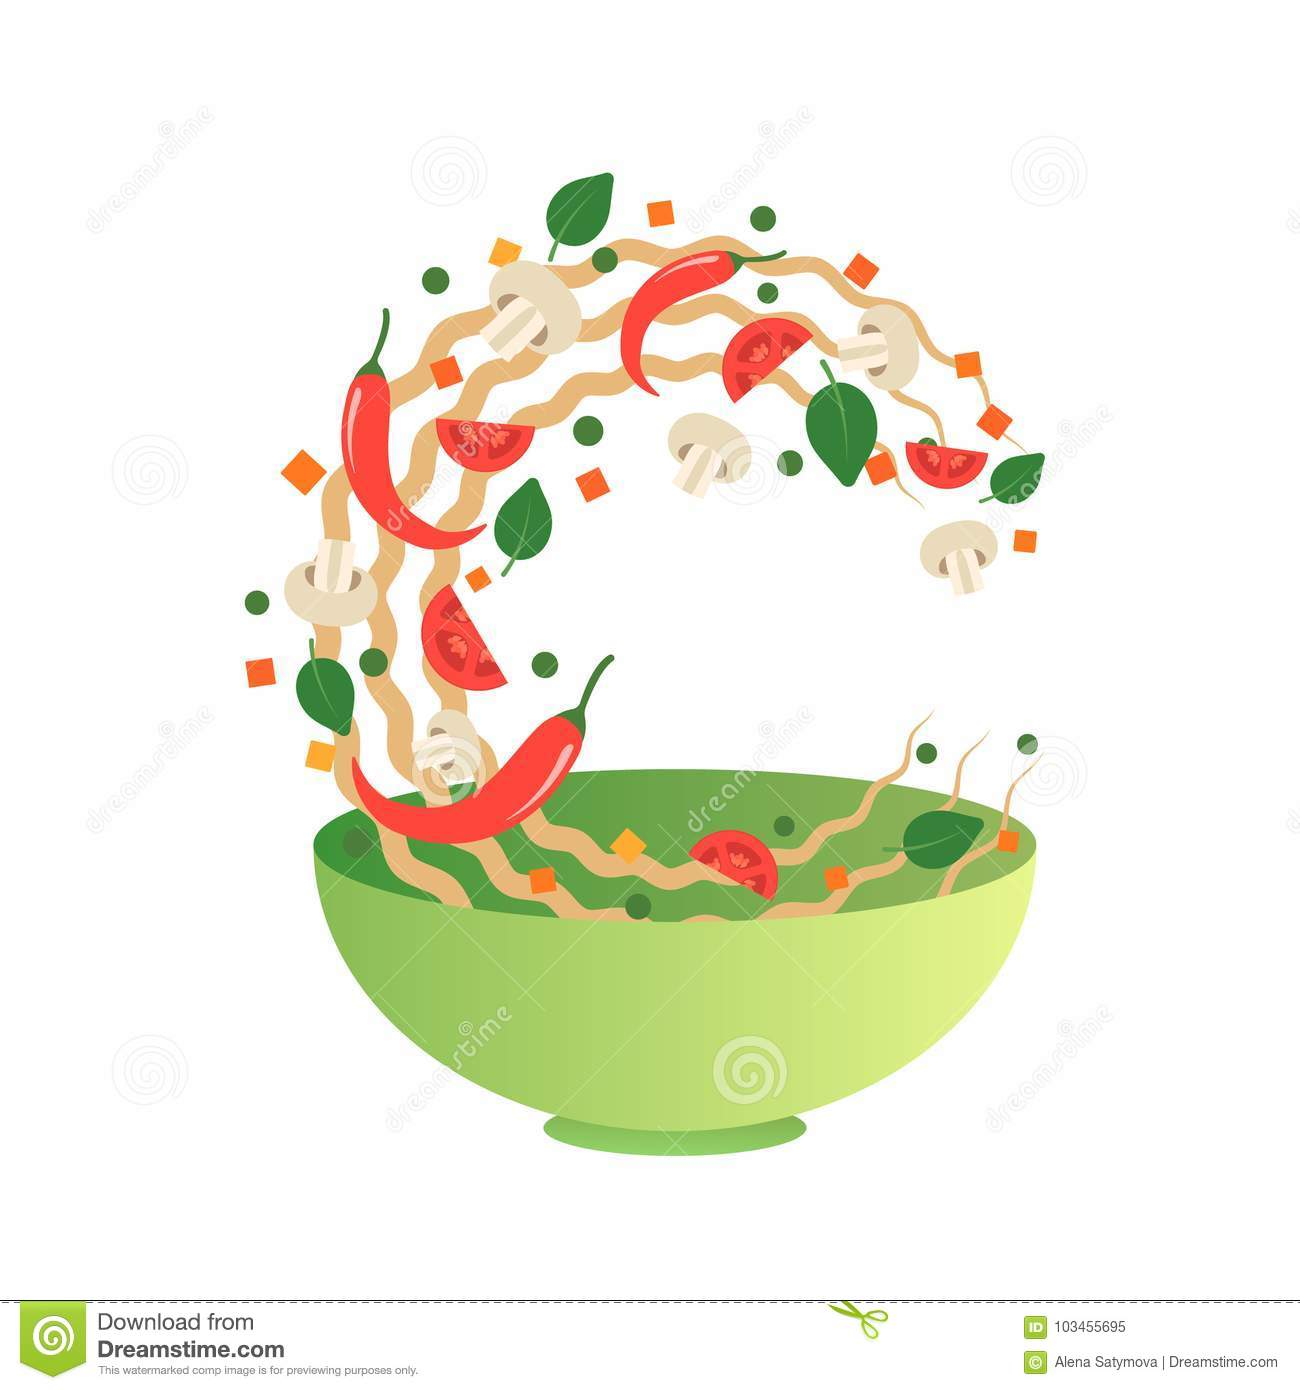 Stir fry vector illustration. Flipping Asian noodles with vegetables in a green bowl. Cartoon style